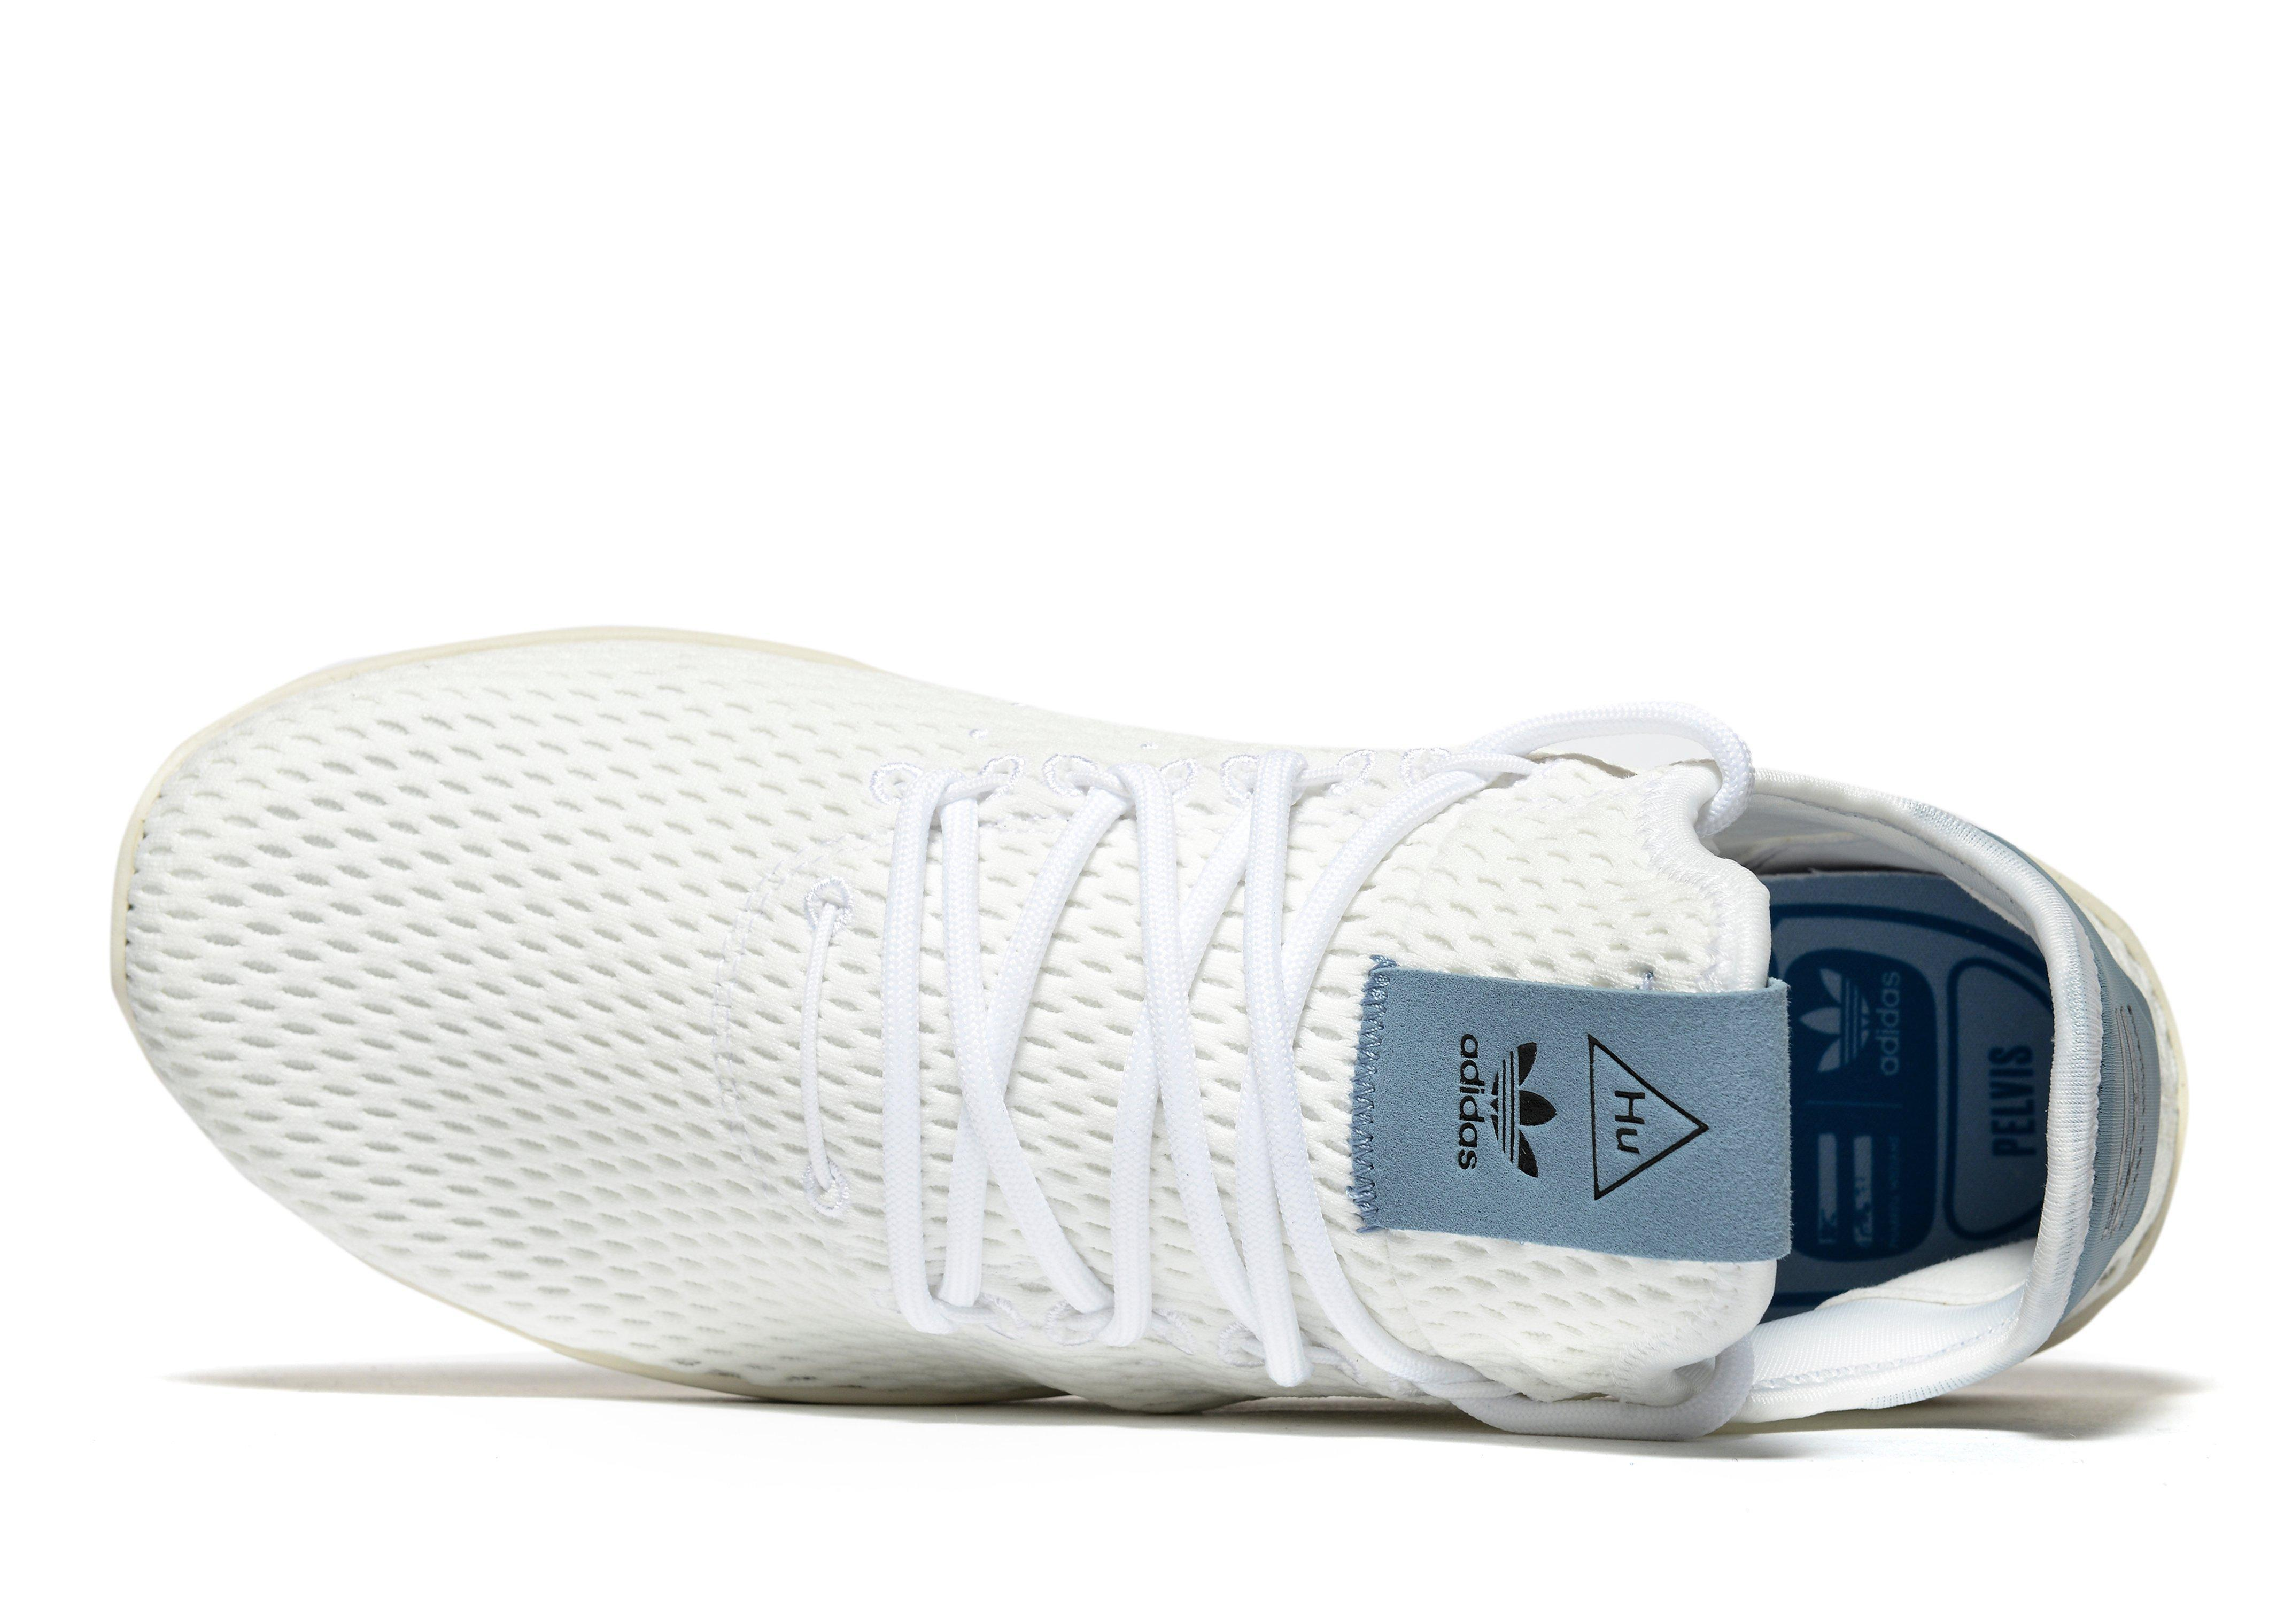 7b39c989689d6 Lyst - adidas Originals Pharrell Williams Tennis Hu in Blue for Men